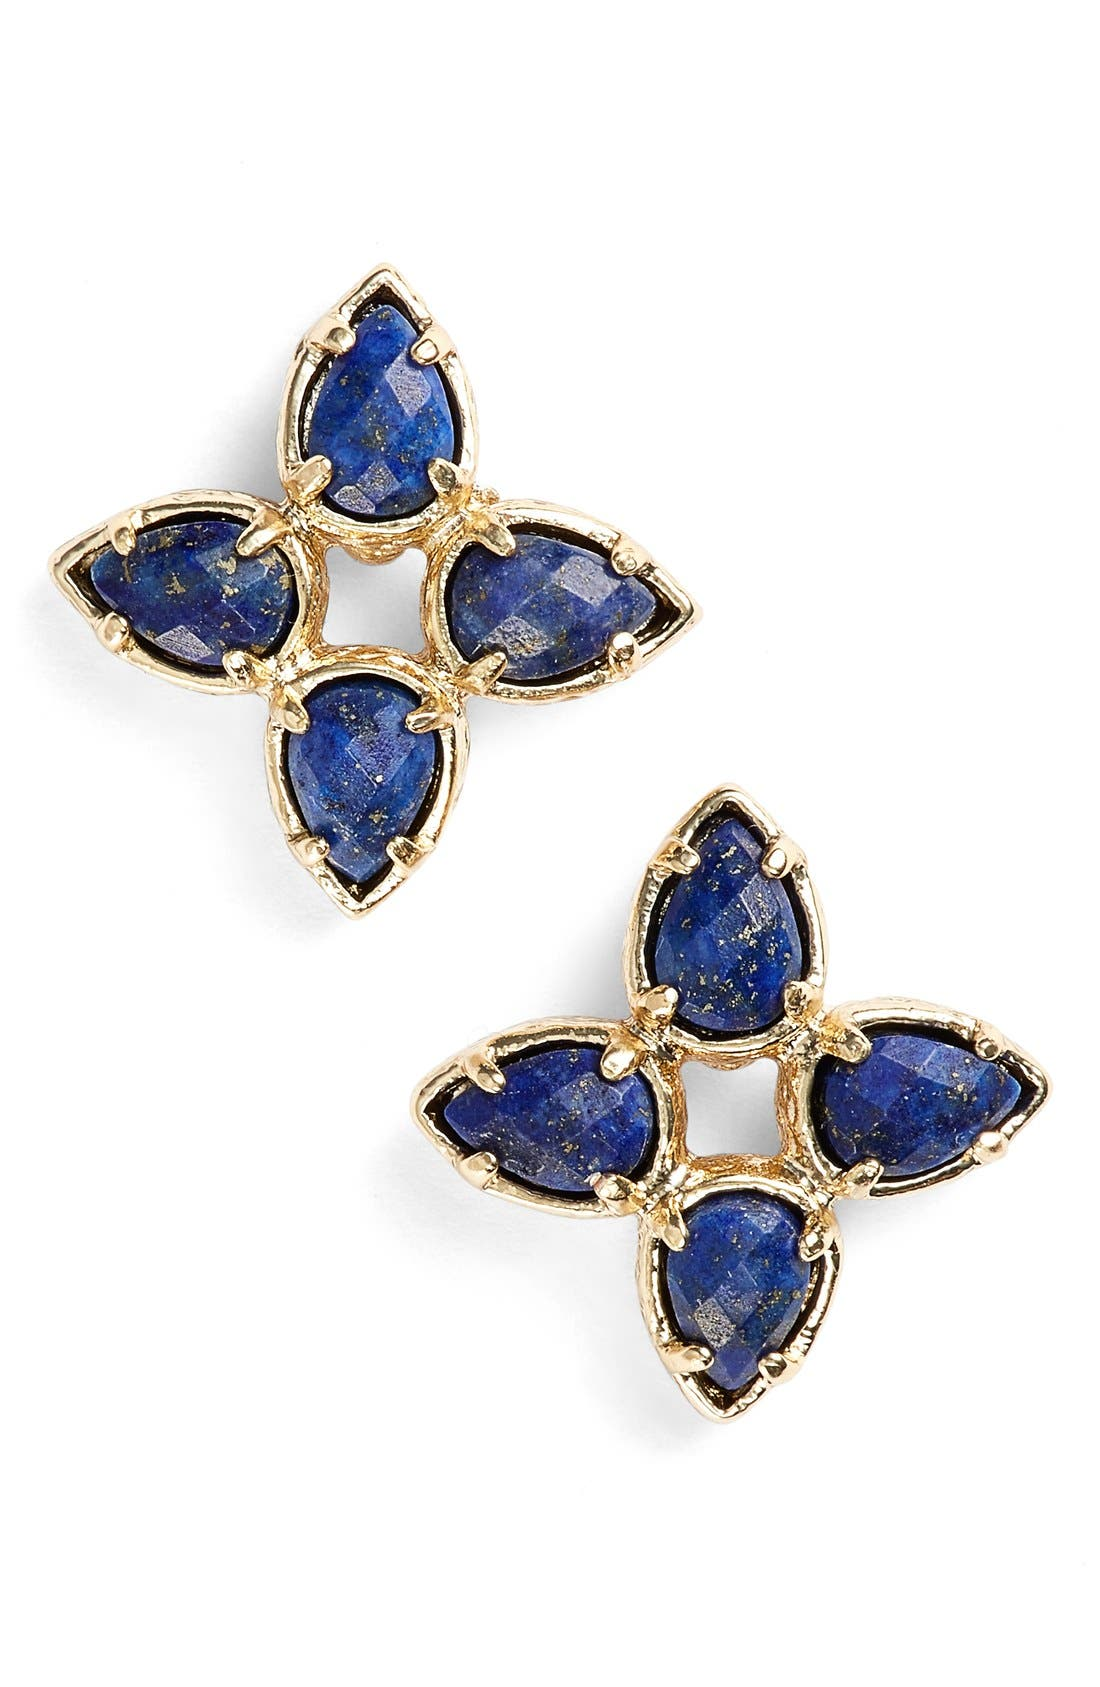 Main Image - Kendra Scott 'Tavi' Stud Earrings